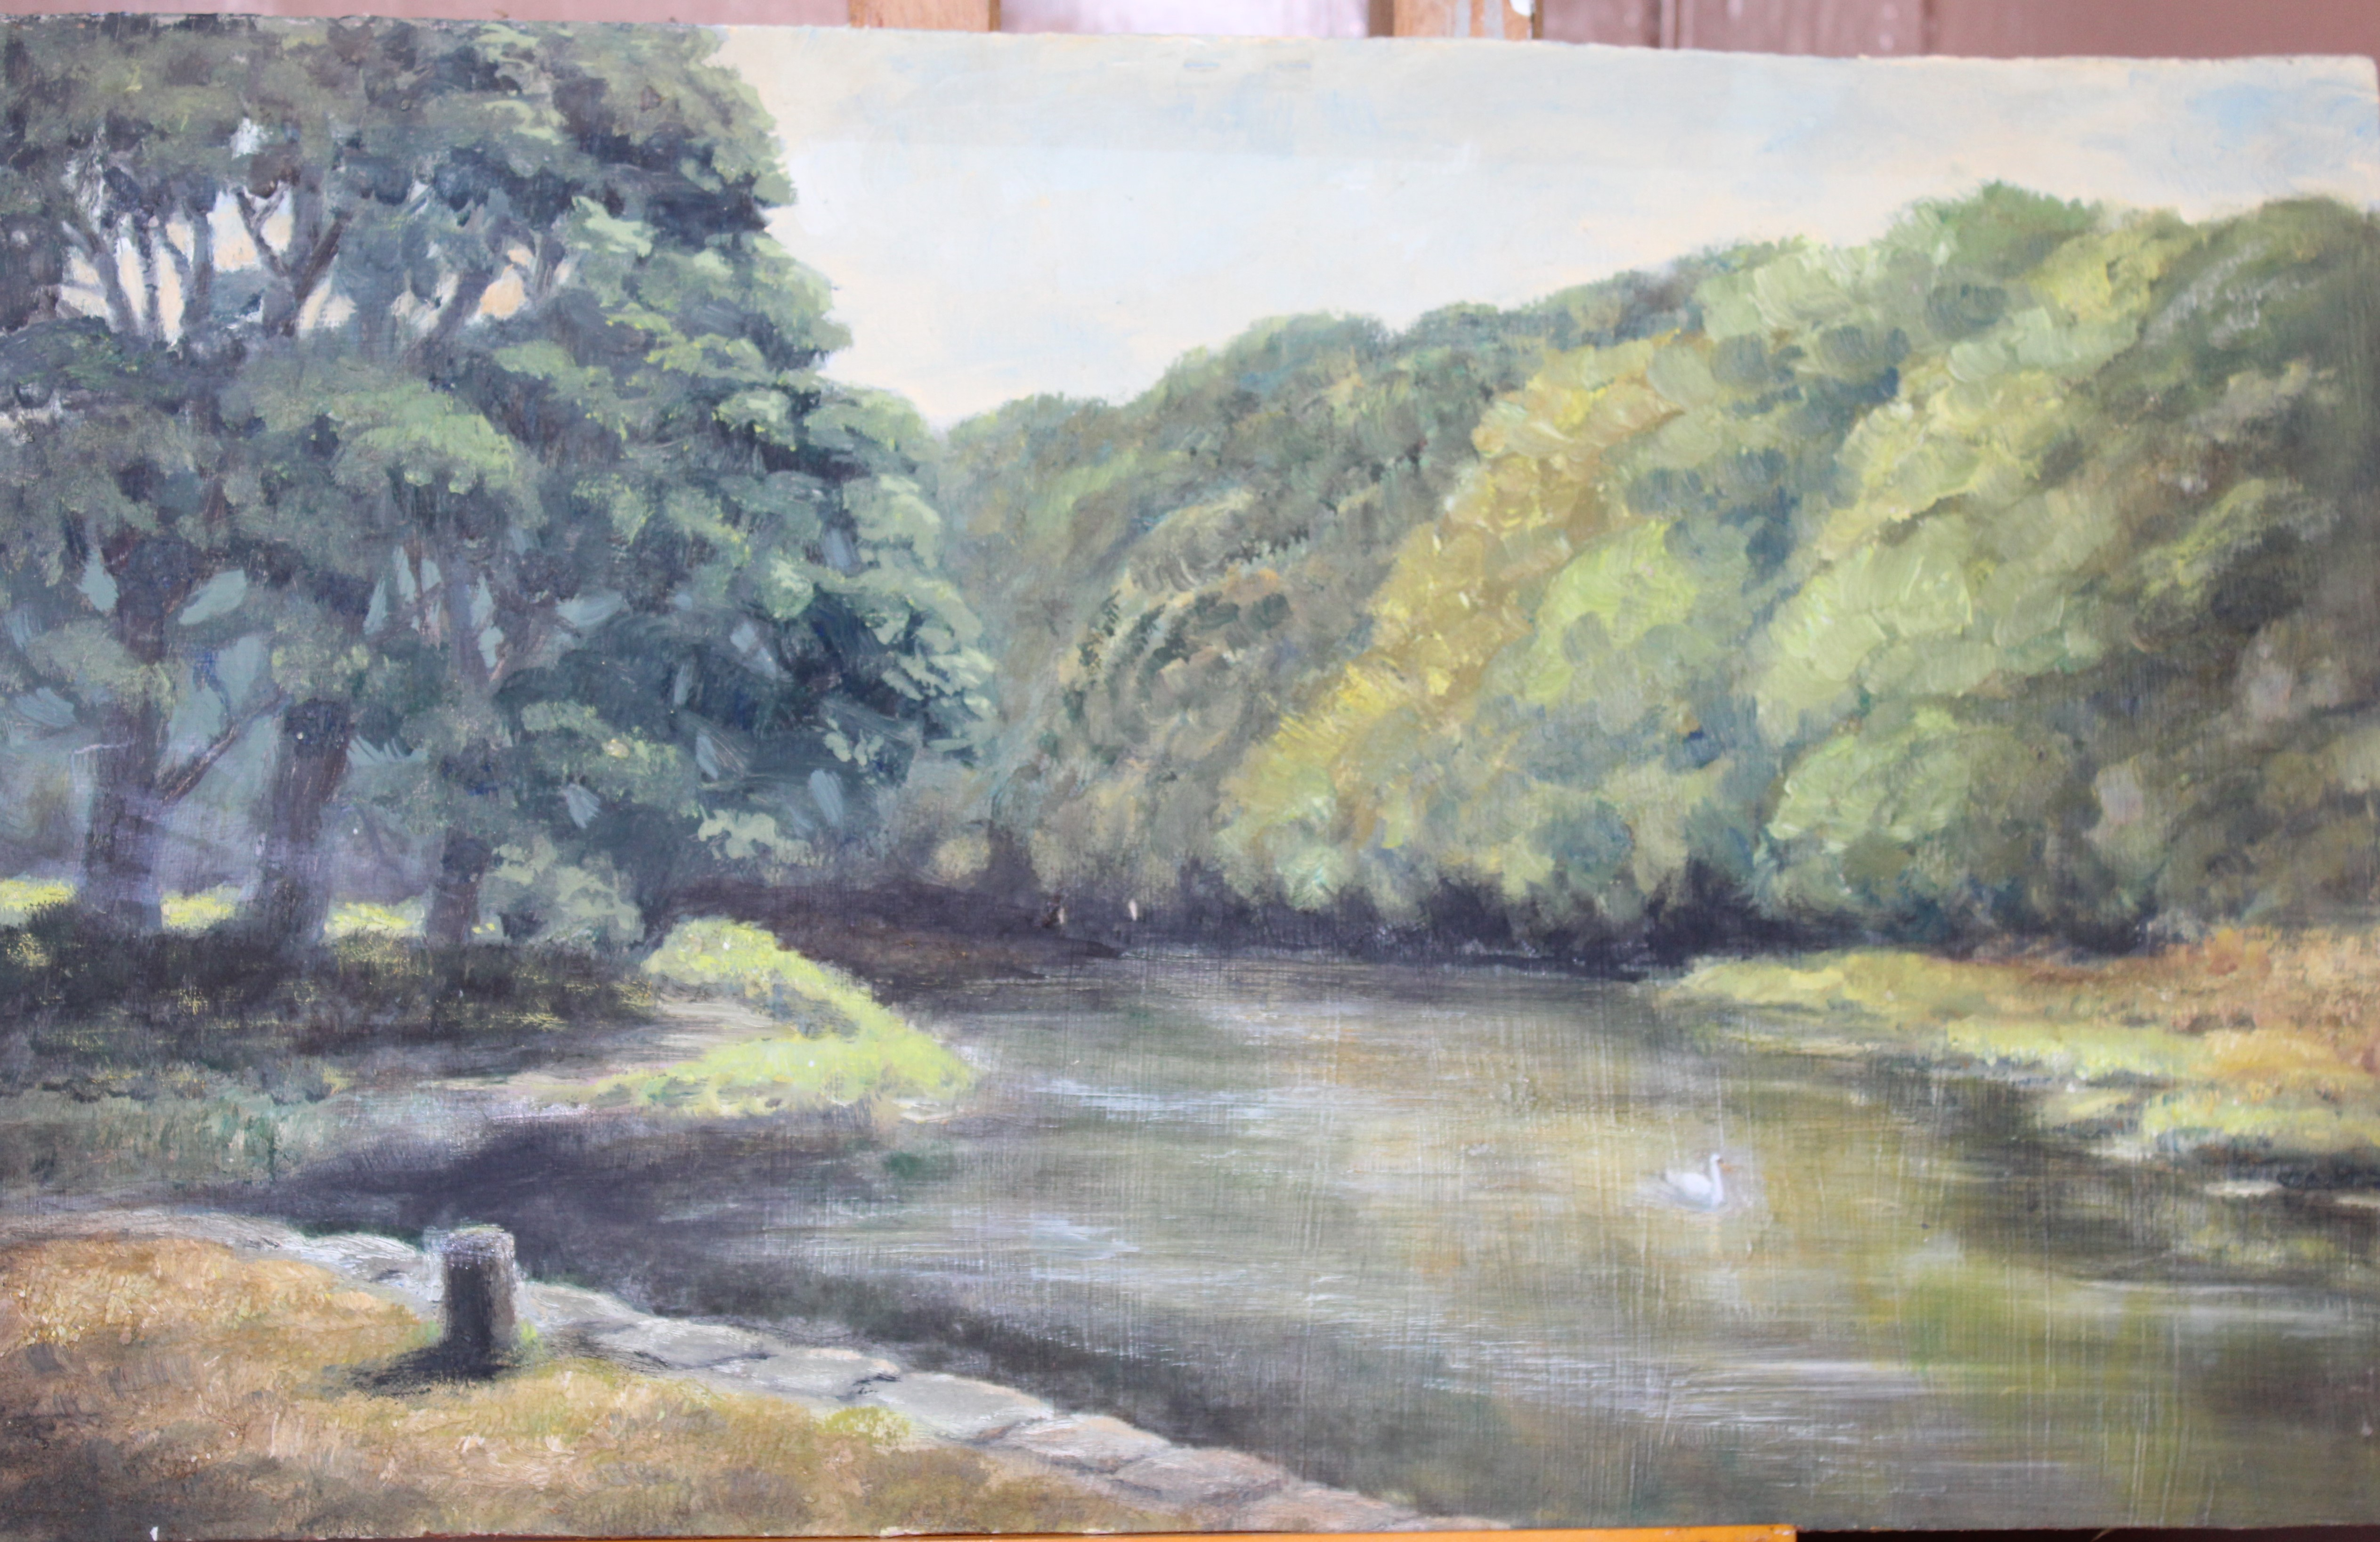 •LOPWELL Unsigned unframed oil on board, 27.5 x 45.5cm, labelled verso, sold together with three